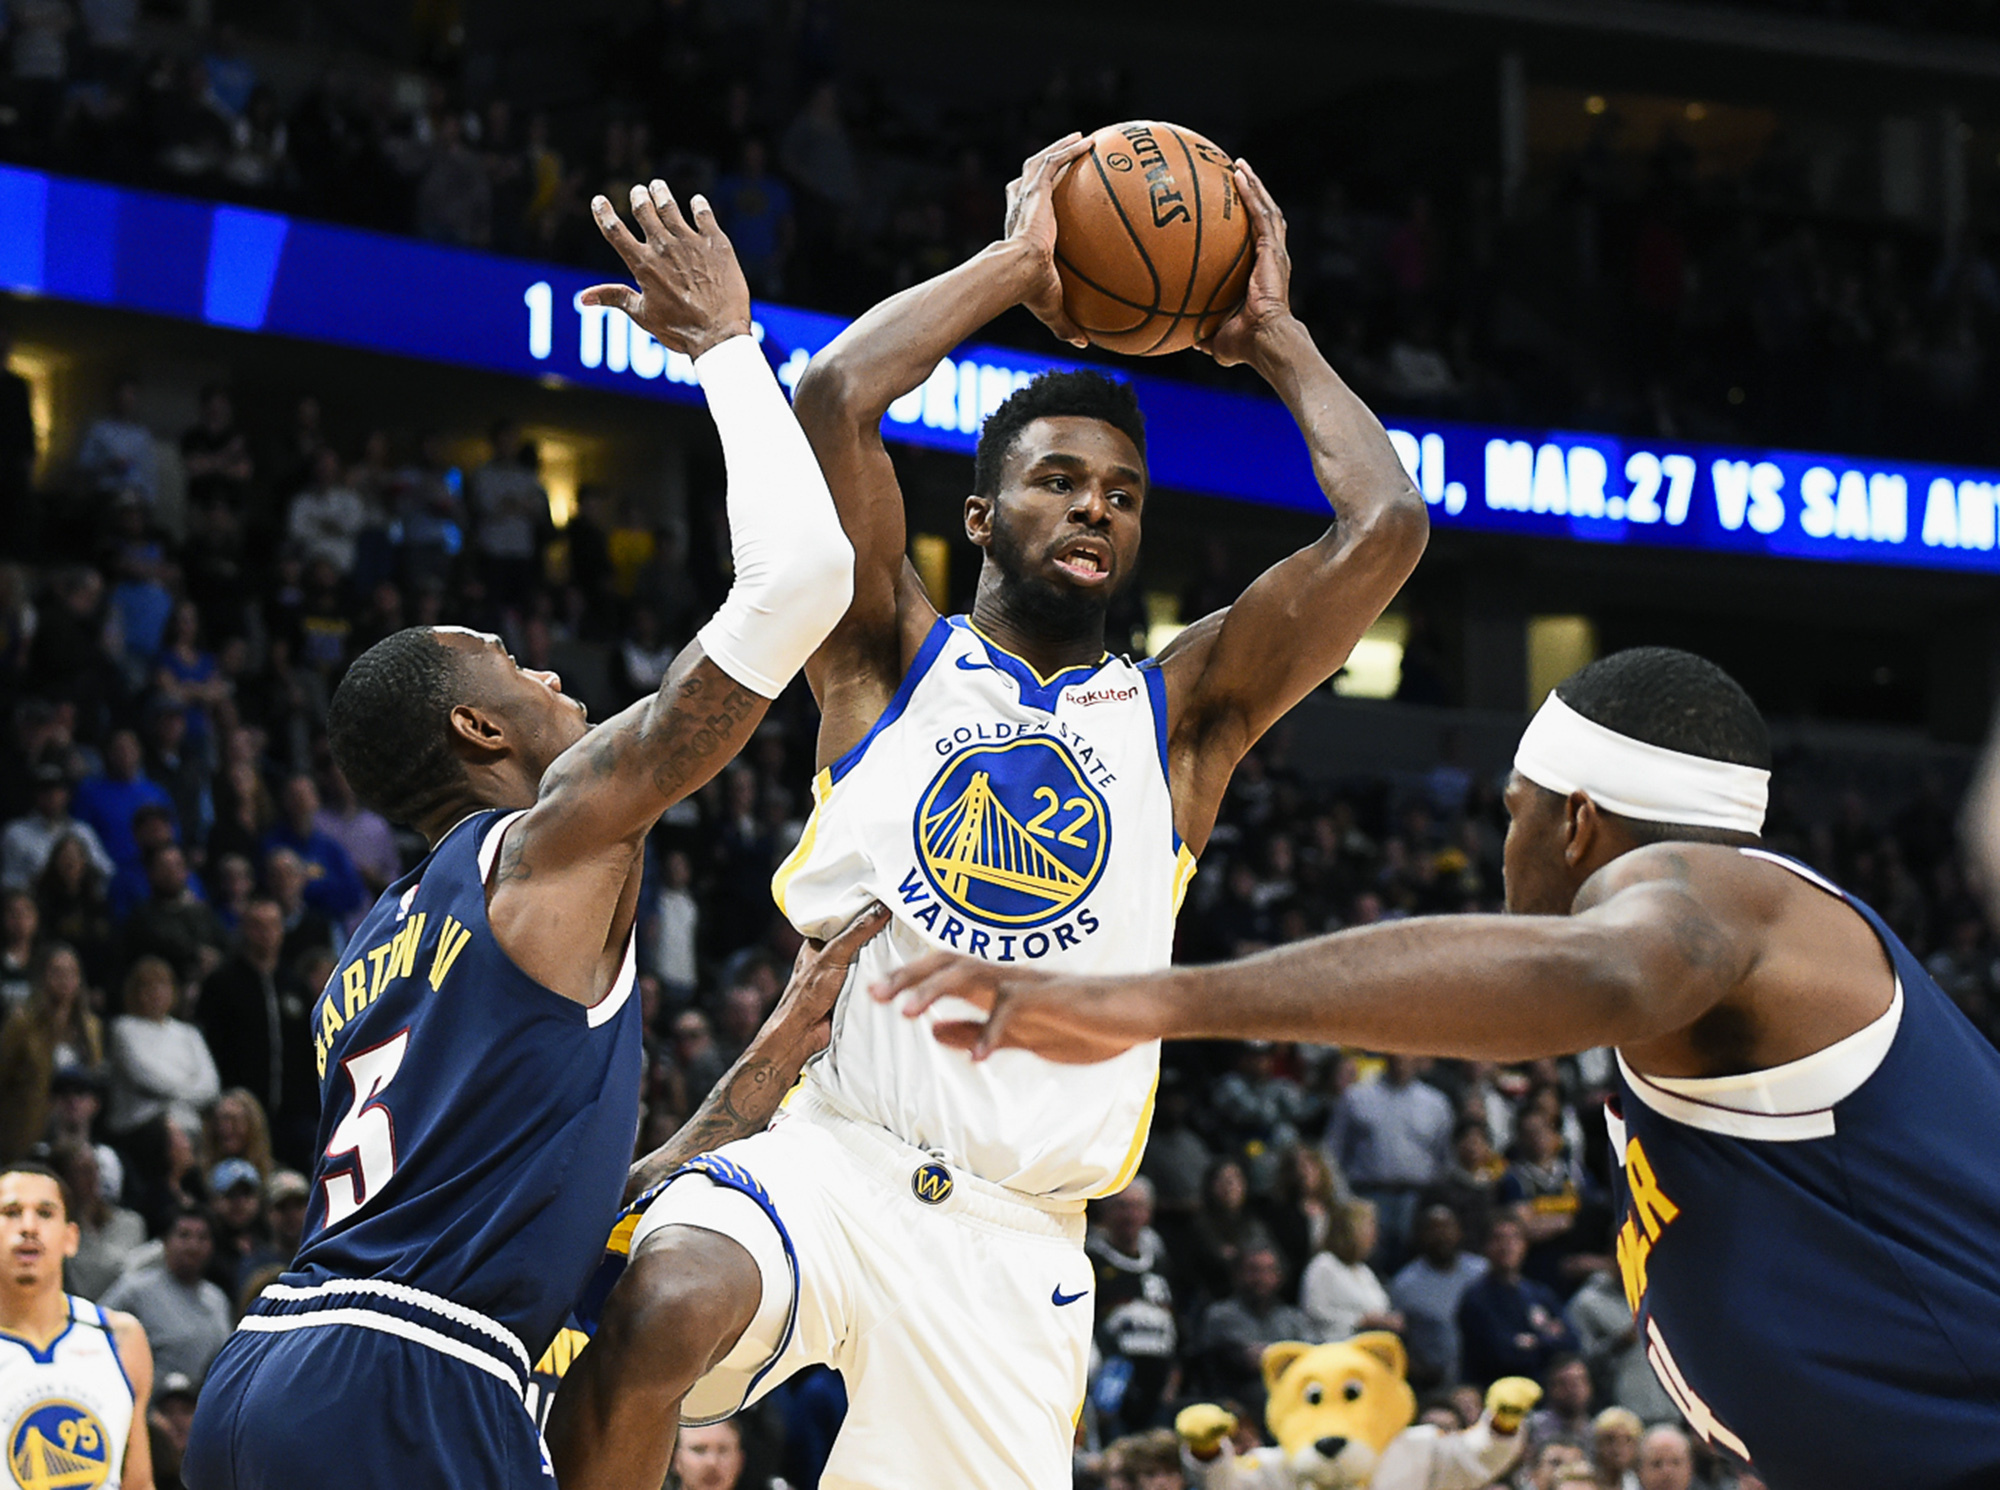 Paschall helps Warriors rally to stun Nuggets 116-100